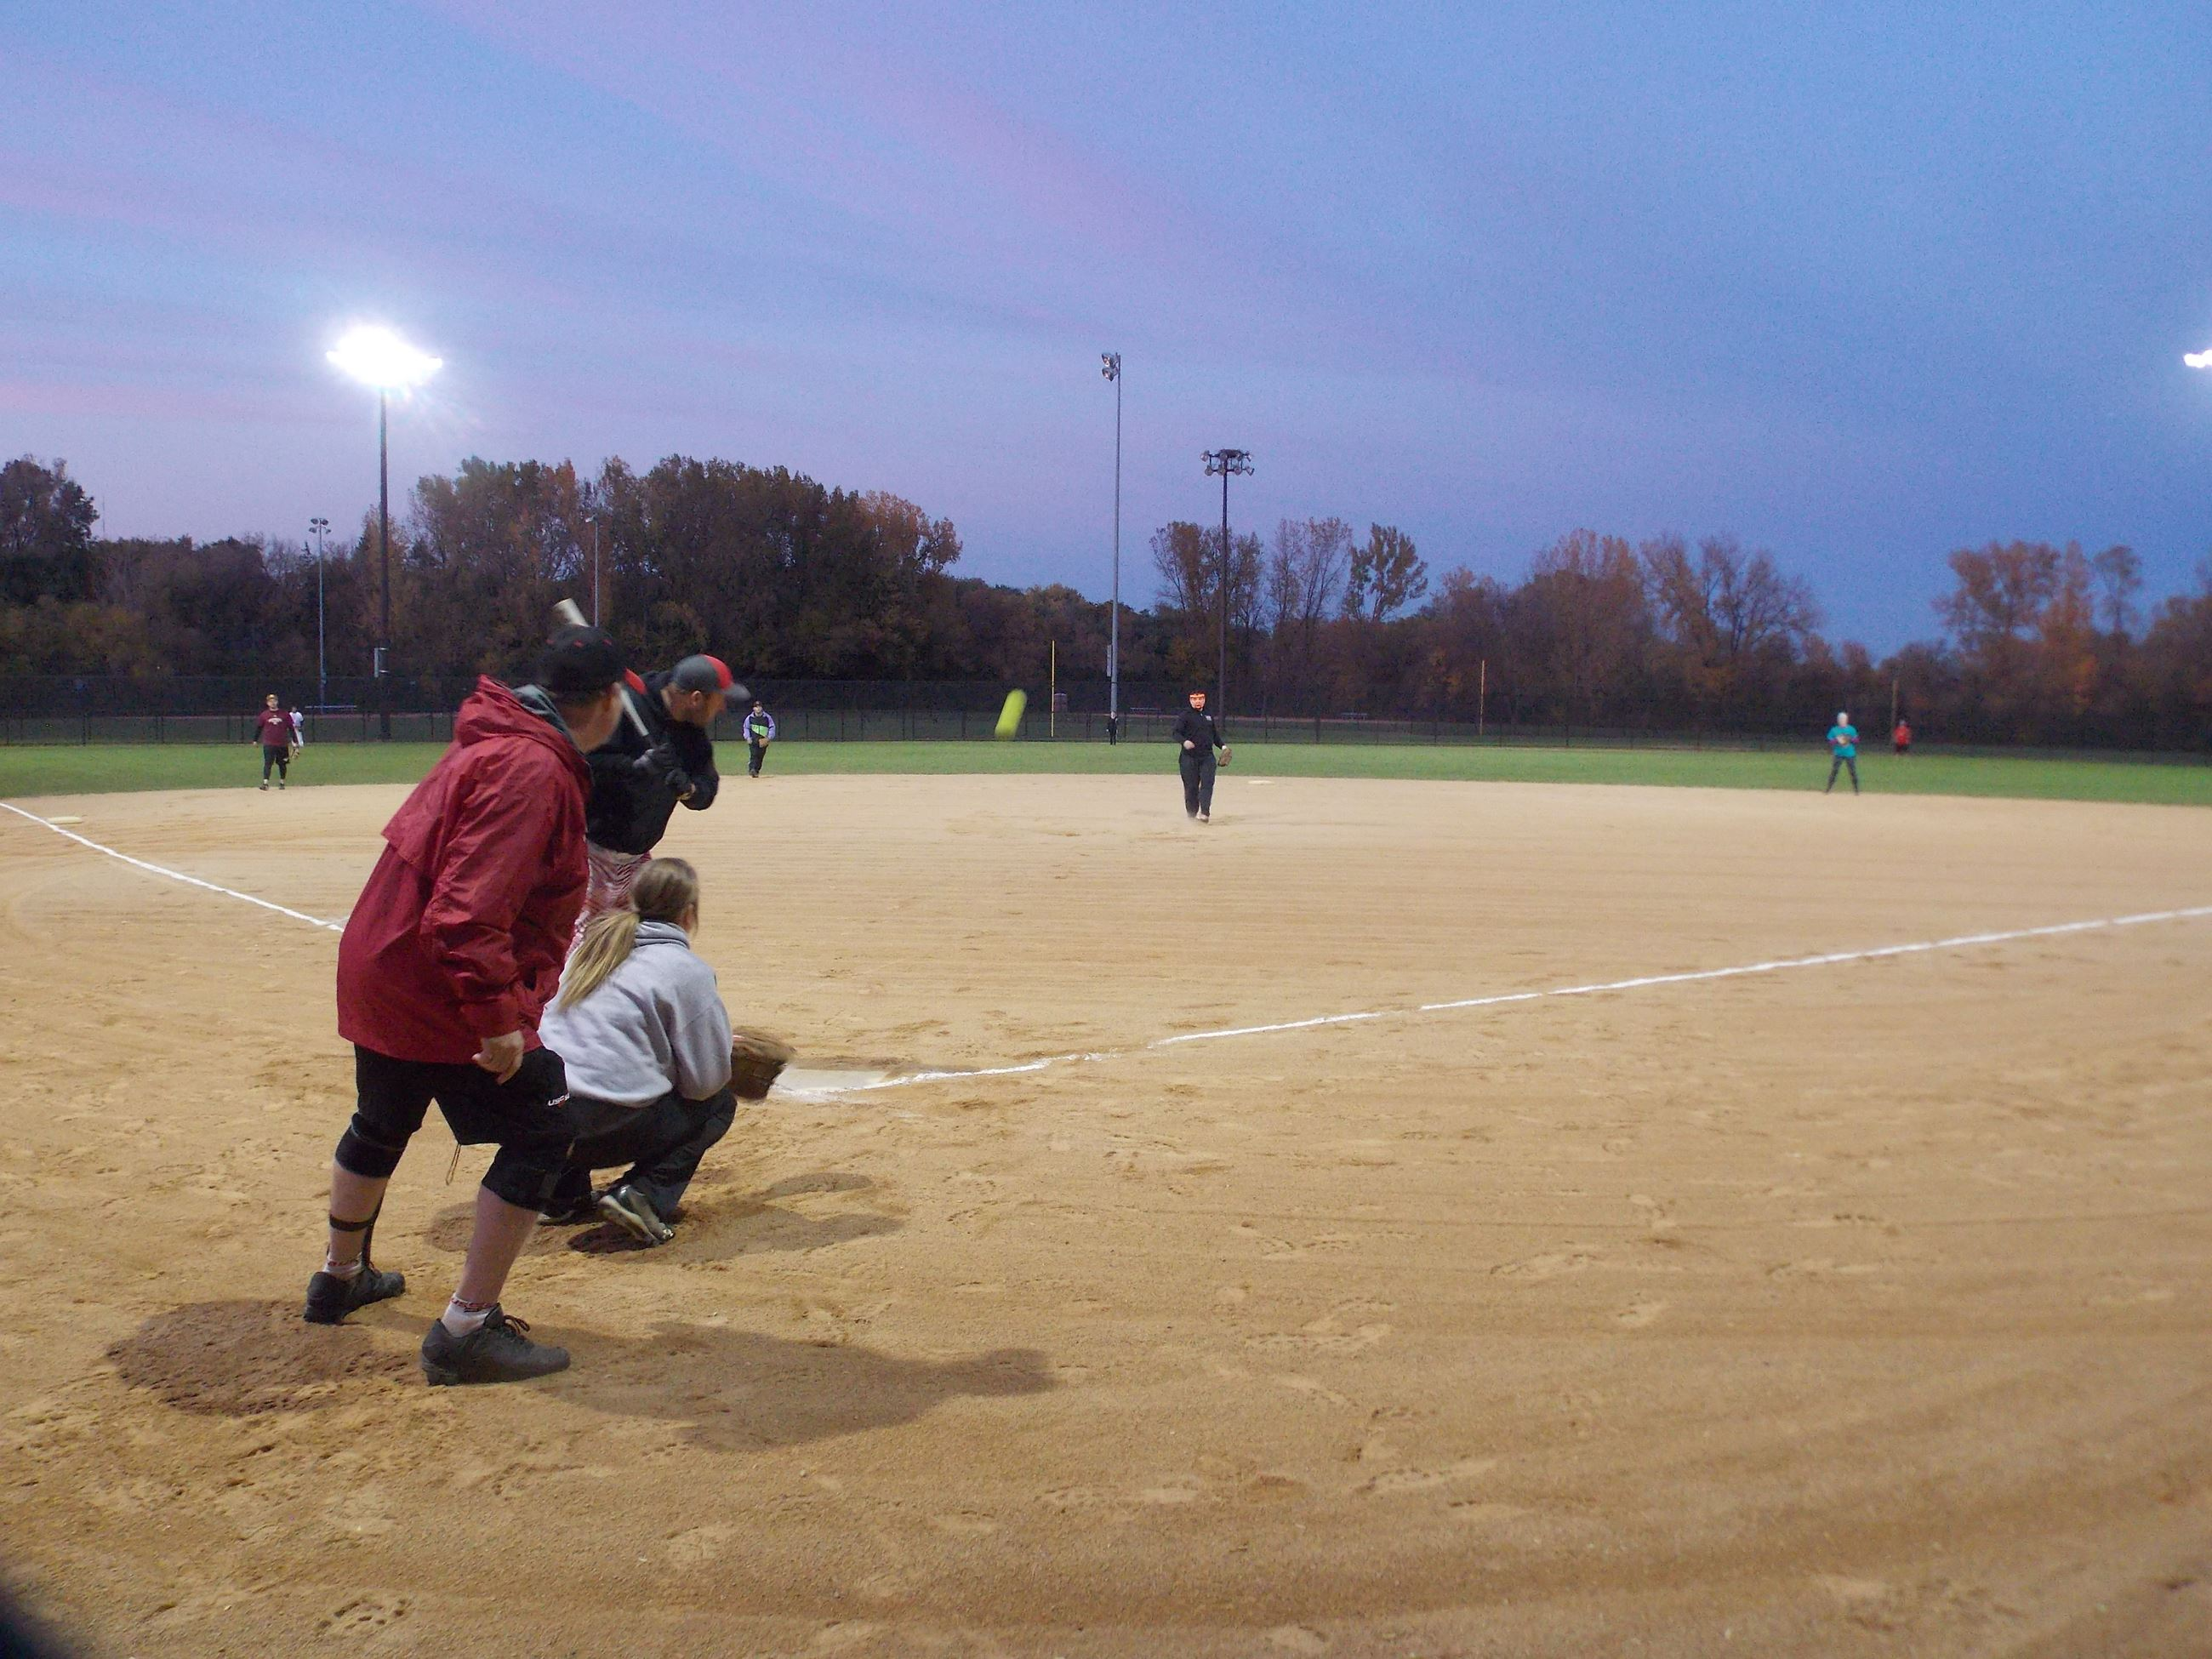 Adult Softball Leagues | Roseville, MN - Official Website